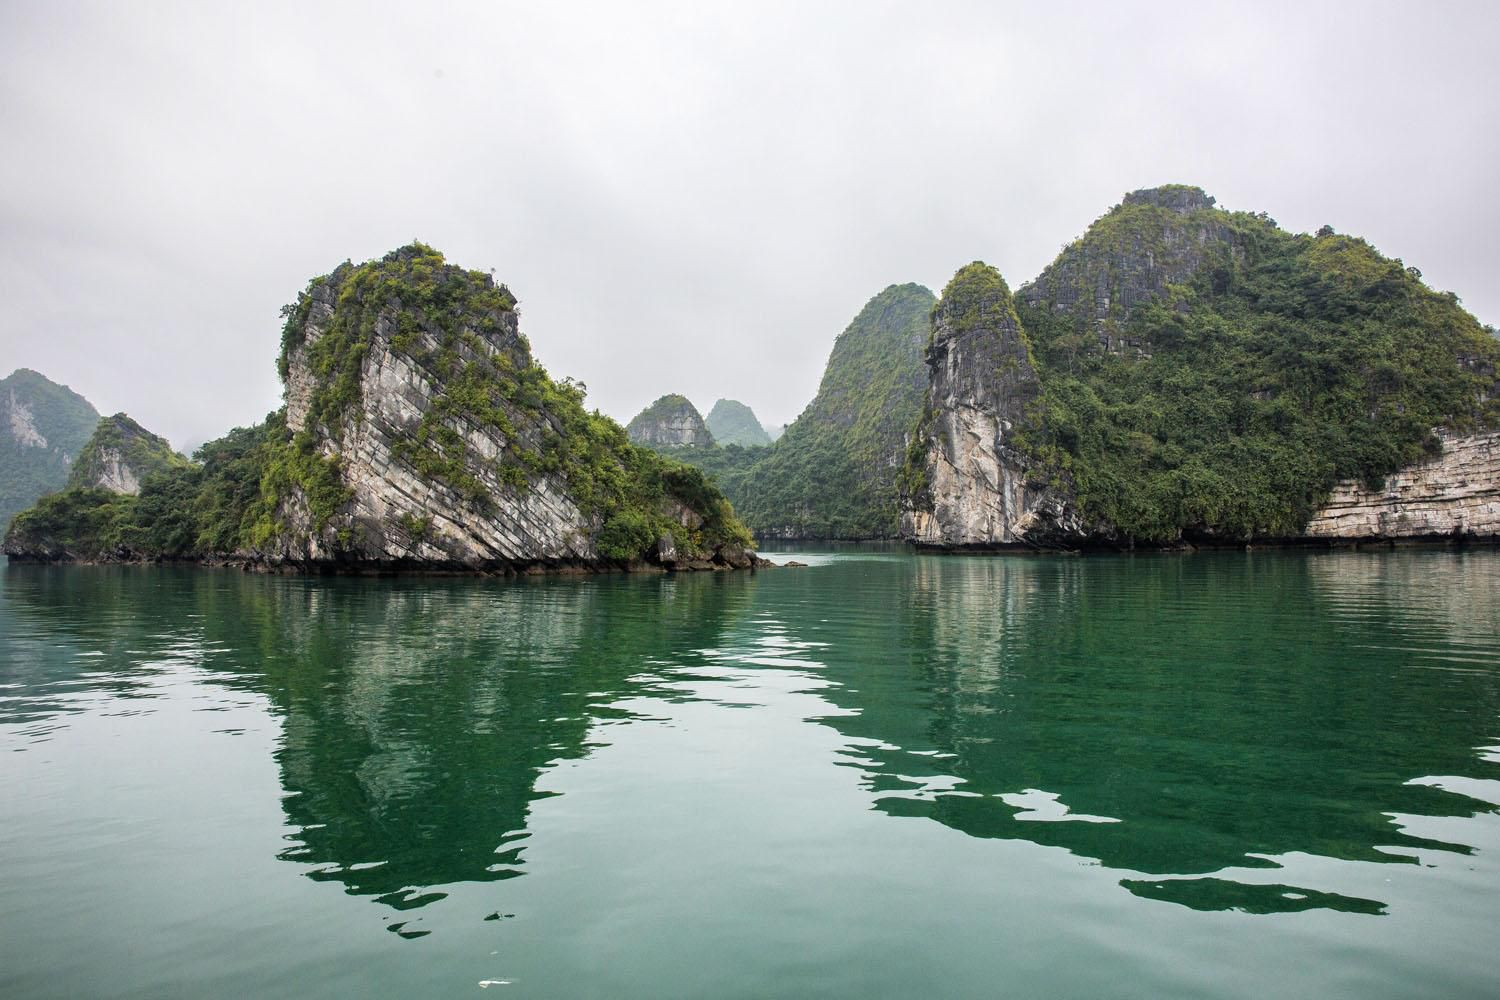 Halong Bay on a Cloudy Day